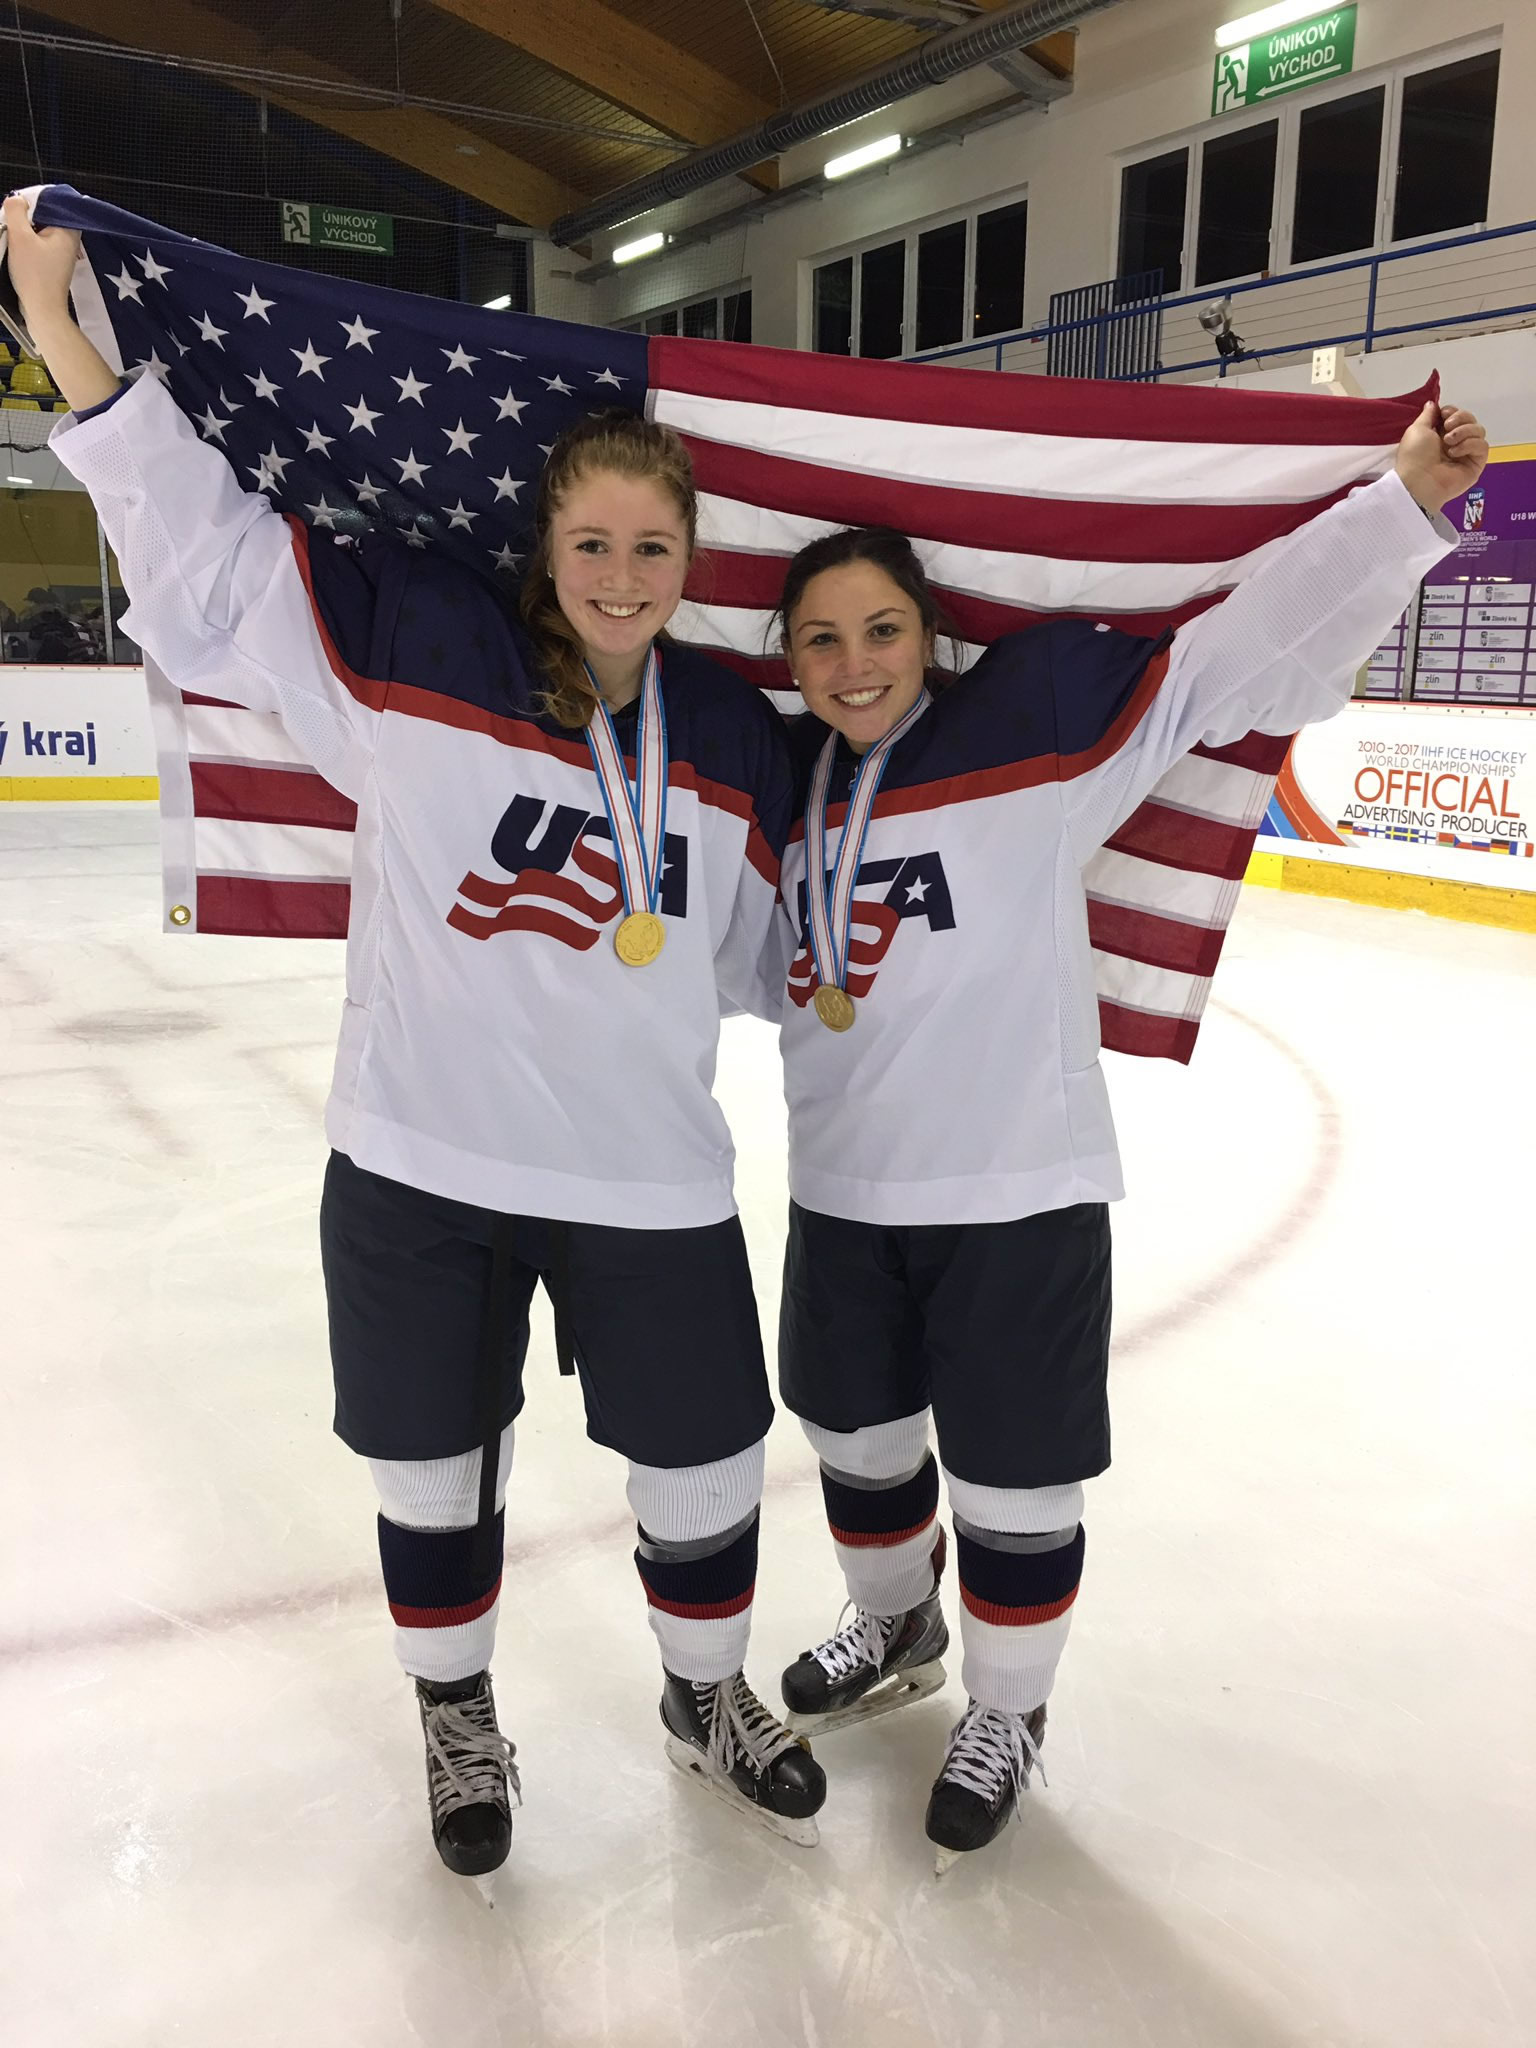 LaMantia & Compher – Team USA